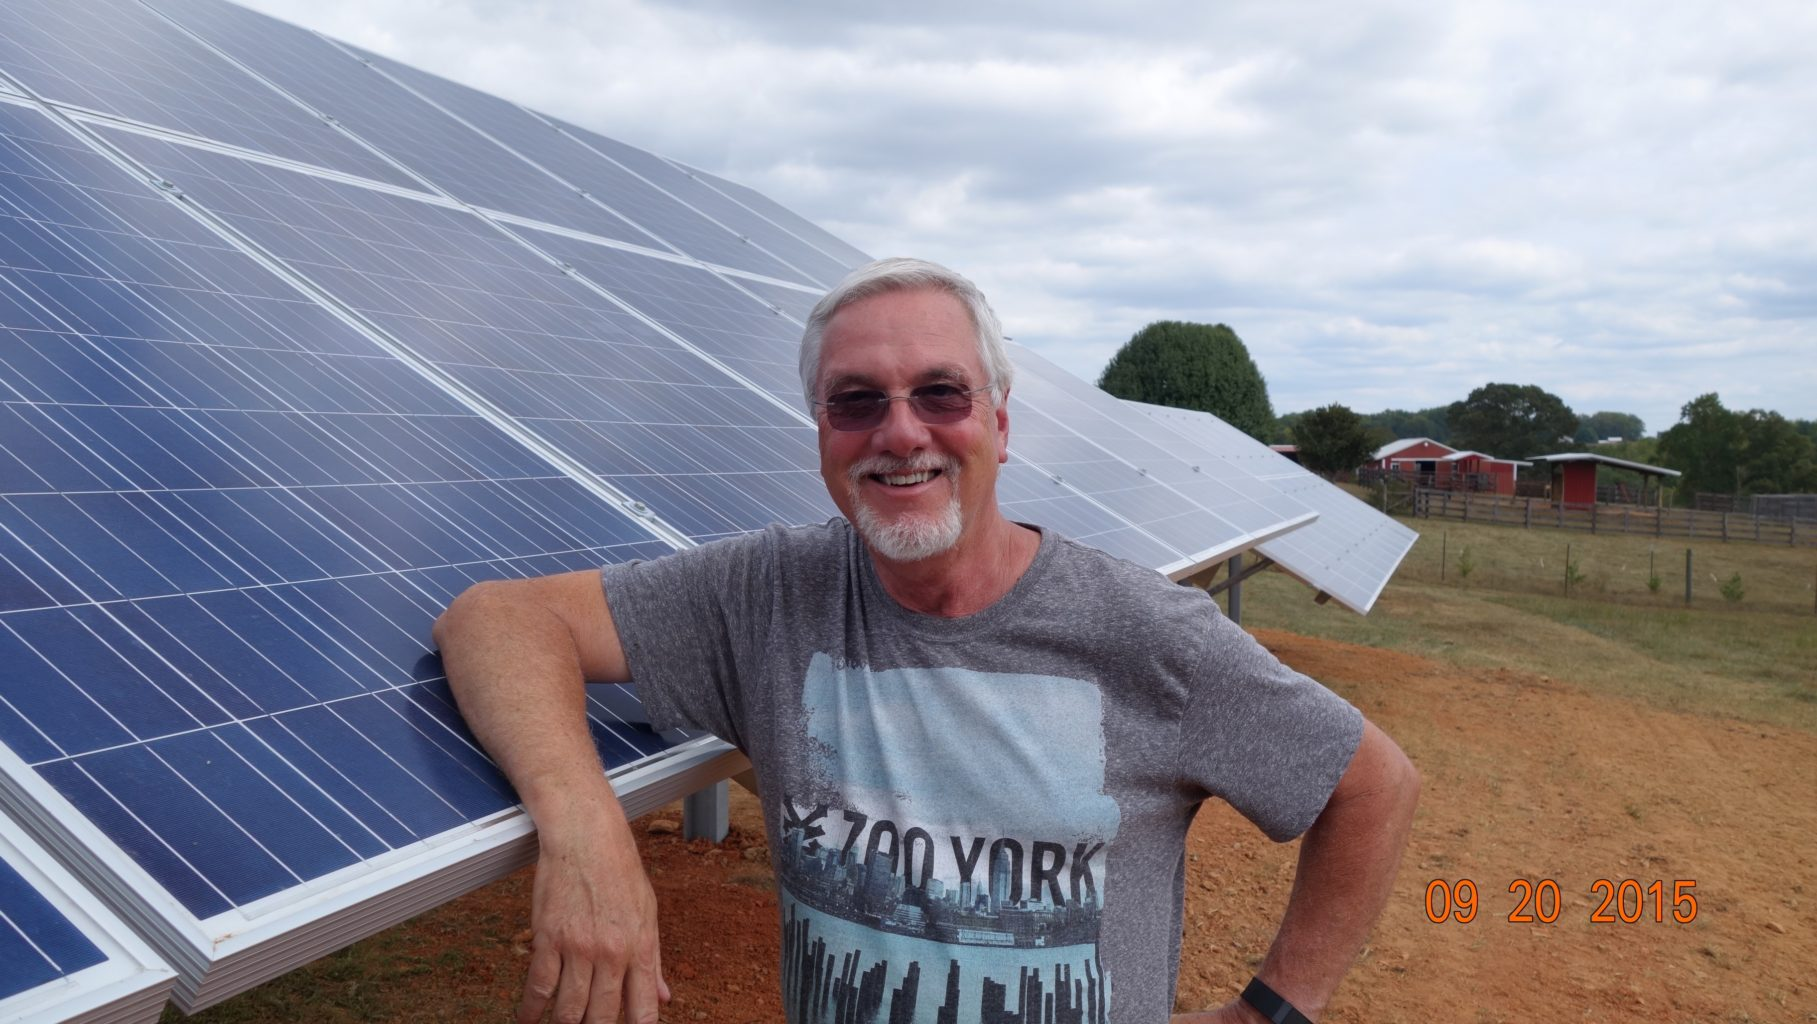 Steve Thomas with his solar panels